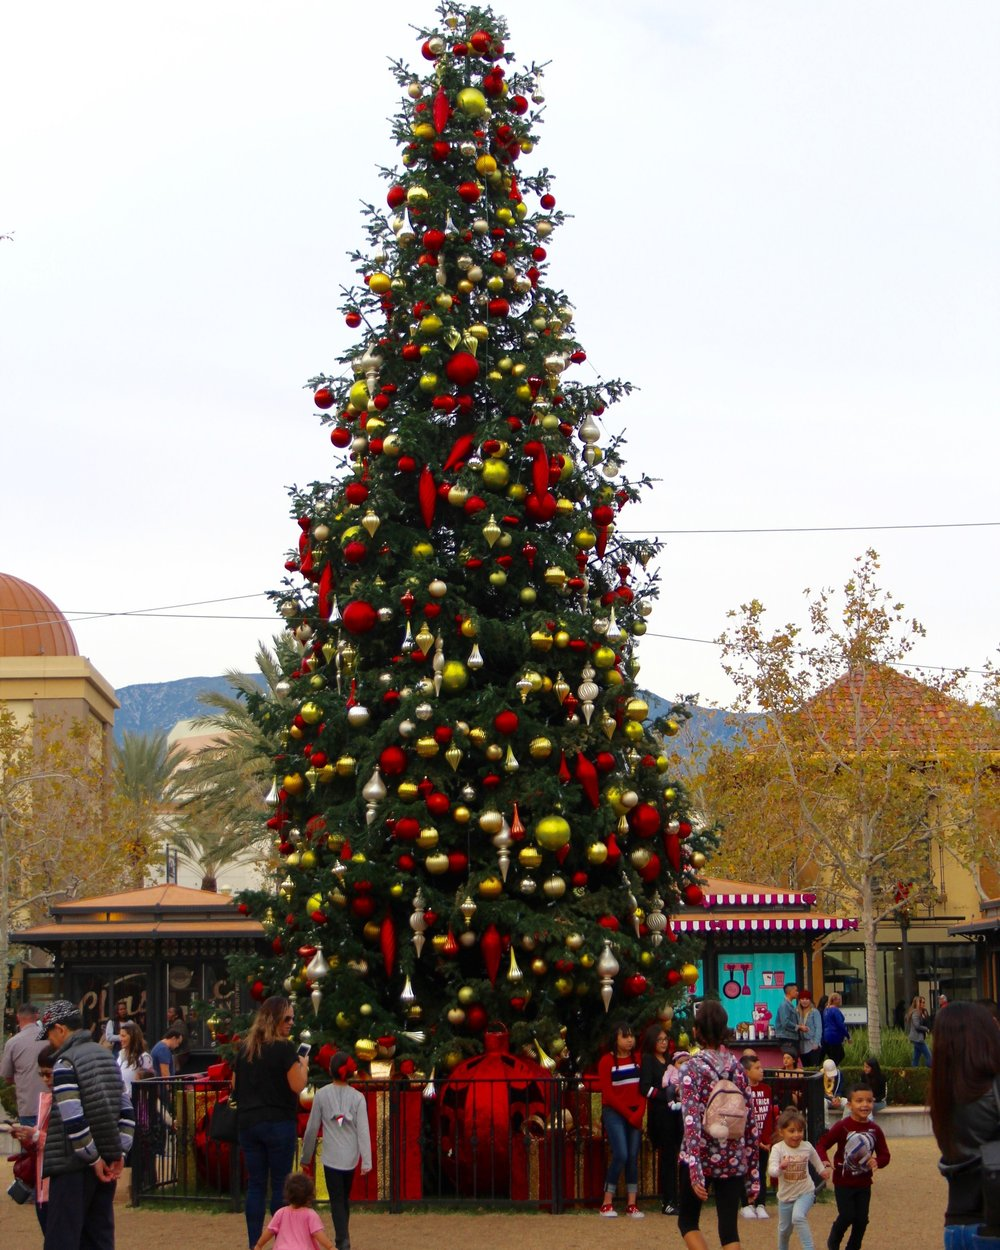 Shoppers surrounding the Christmas tree at Victoria Gardens. Photo by Paris Barraza